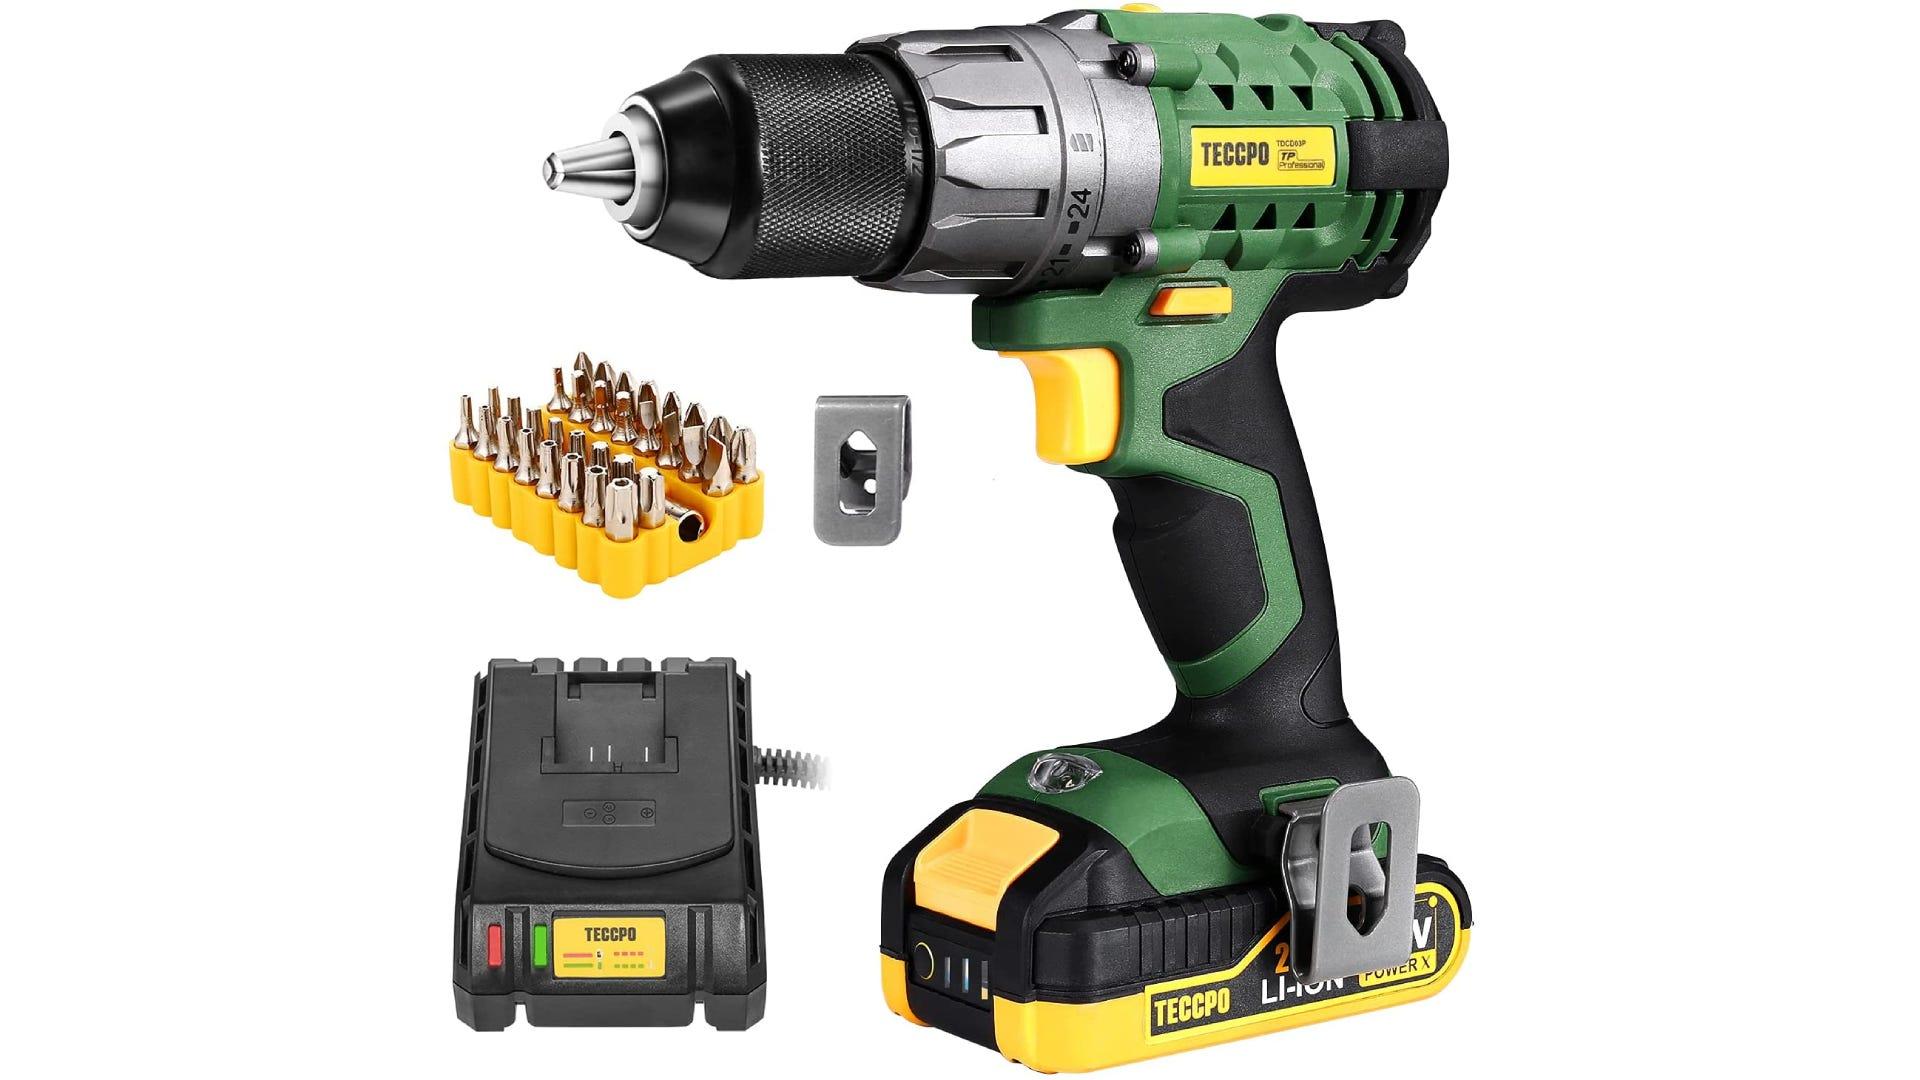 Black 20V cordless drill with metal keyless chuck, two batteries, and a variety of bits